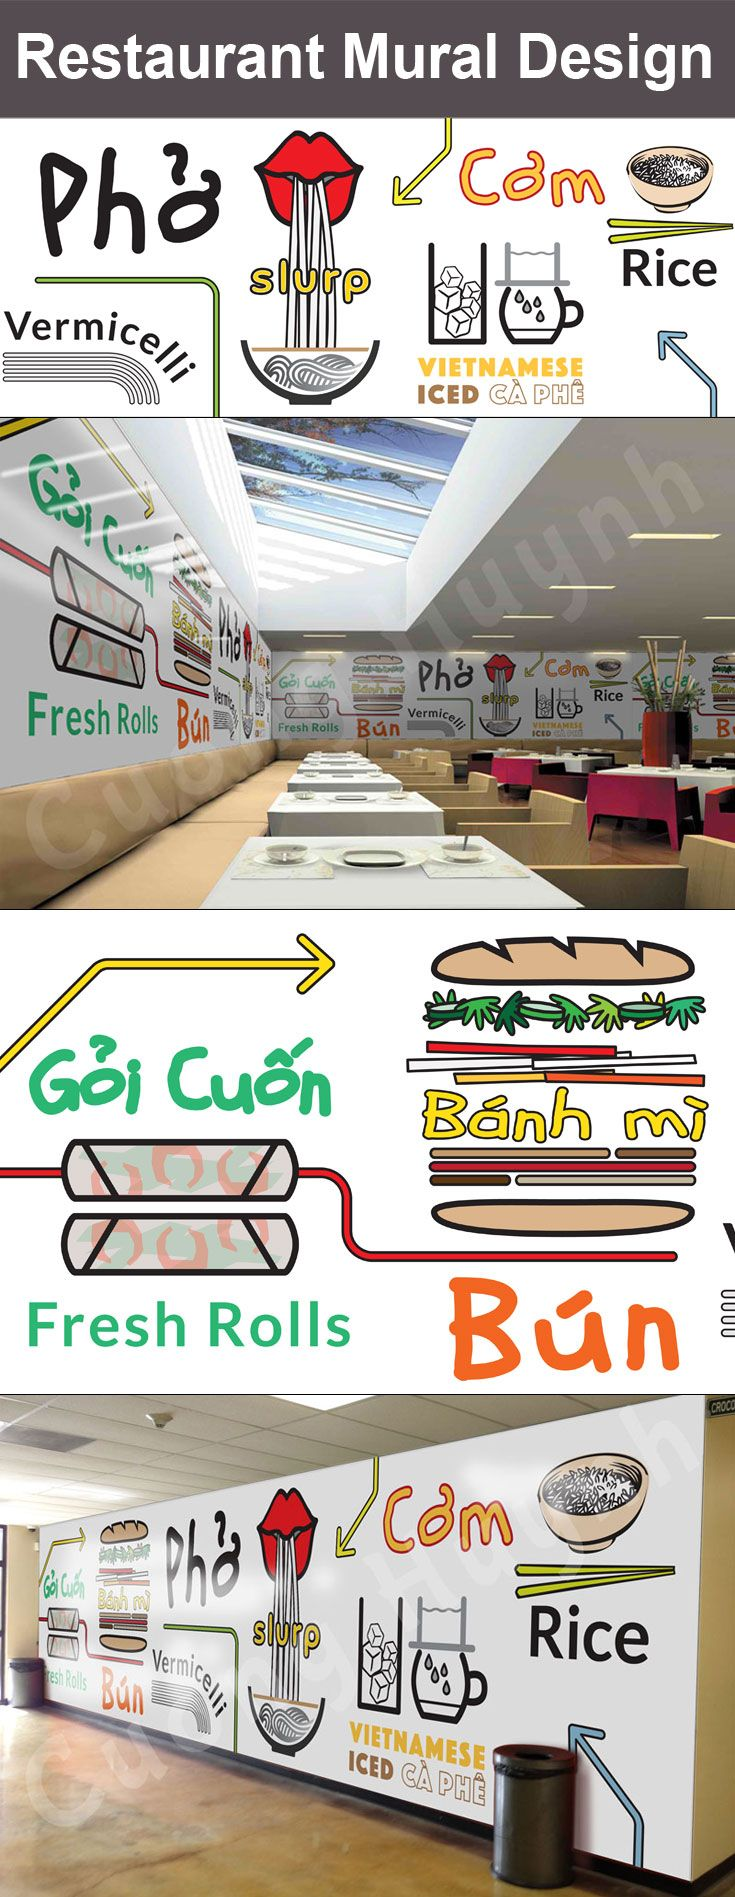 Mural design developed for a pho restaurant. Several conceptual mockups are created to help restaurant owner visualize overall look and feel of front of the house. Digital vector format, 30'x8′, 2015. Ready to be sized to any dimension for print. http://www.cthcreative.com/portfolio/pho-restaurant-mural-design-concept/